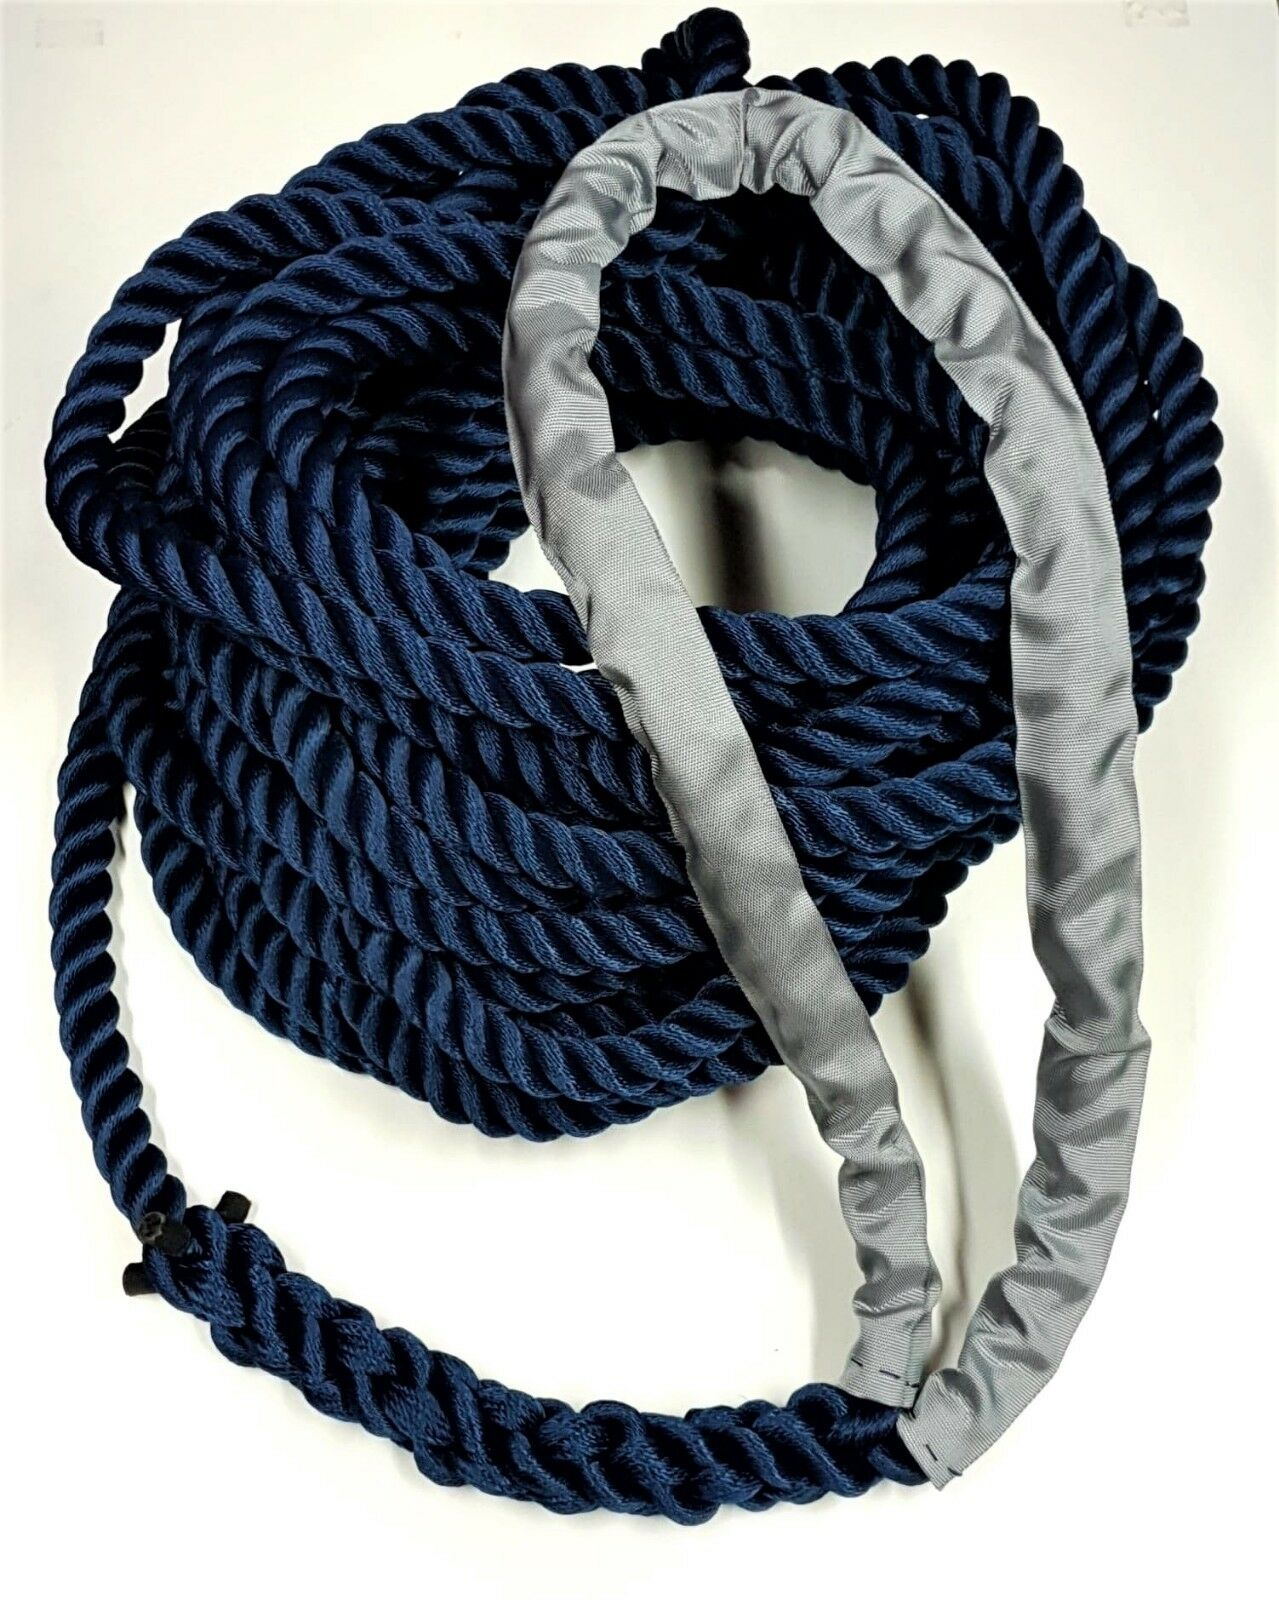 24mm 33mt 3Strand Floating Mooring Line Rope Soft Eye Spliced Ready To Use Navy